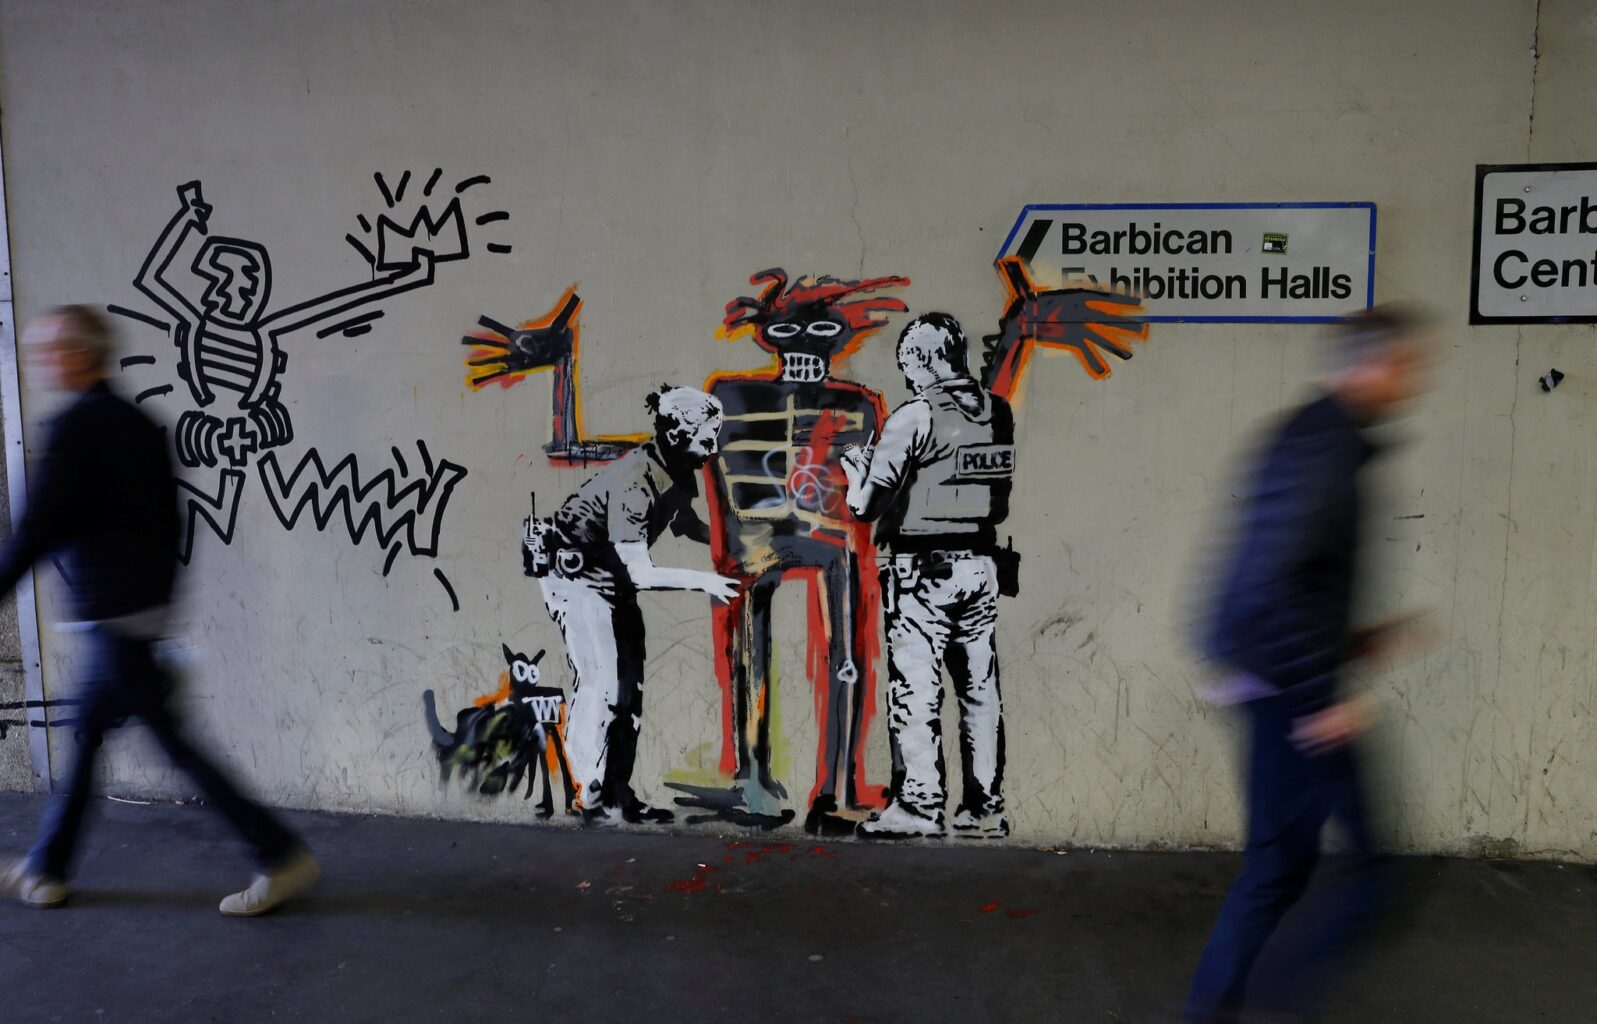 A mural painted by the artist Banksy, near the Barbican Center in London.